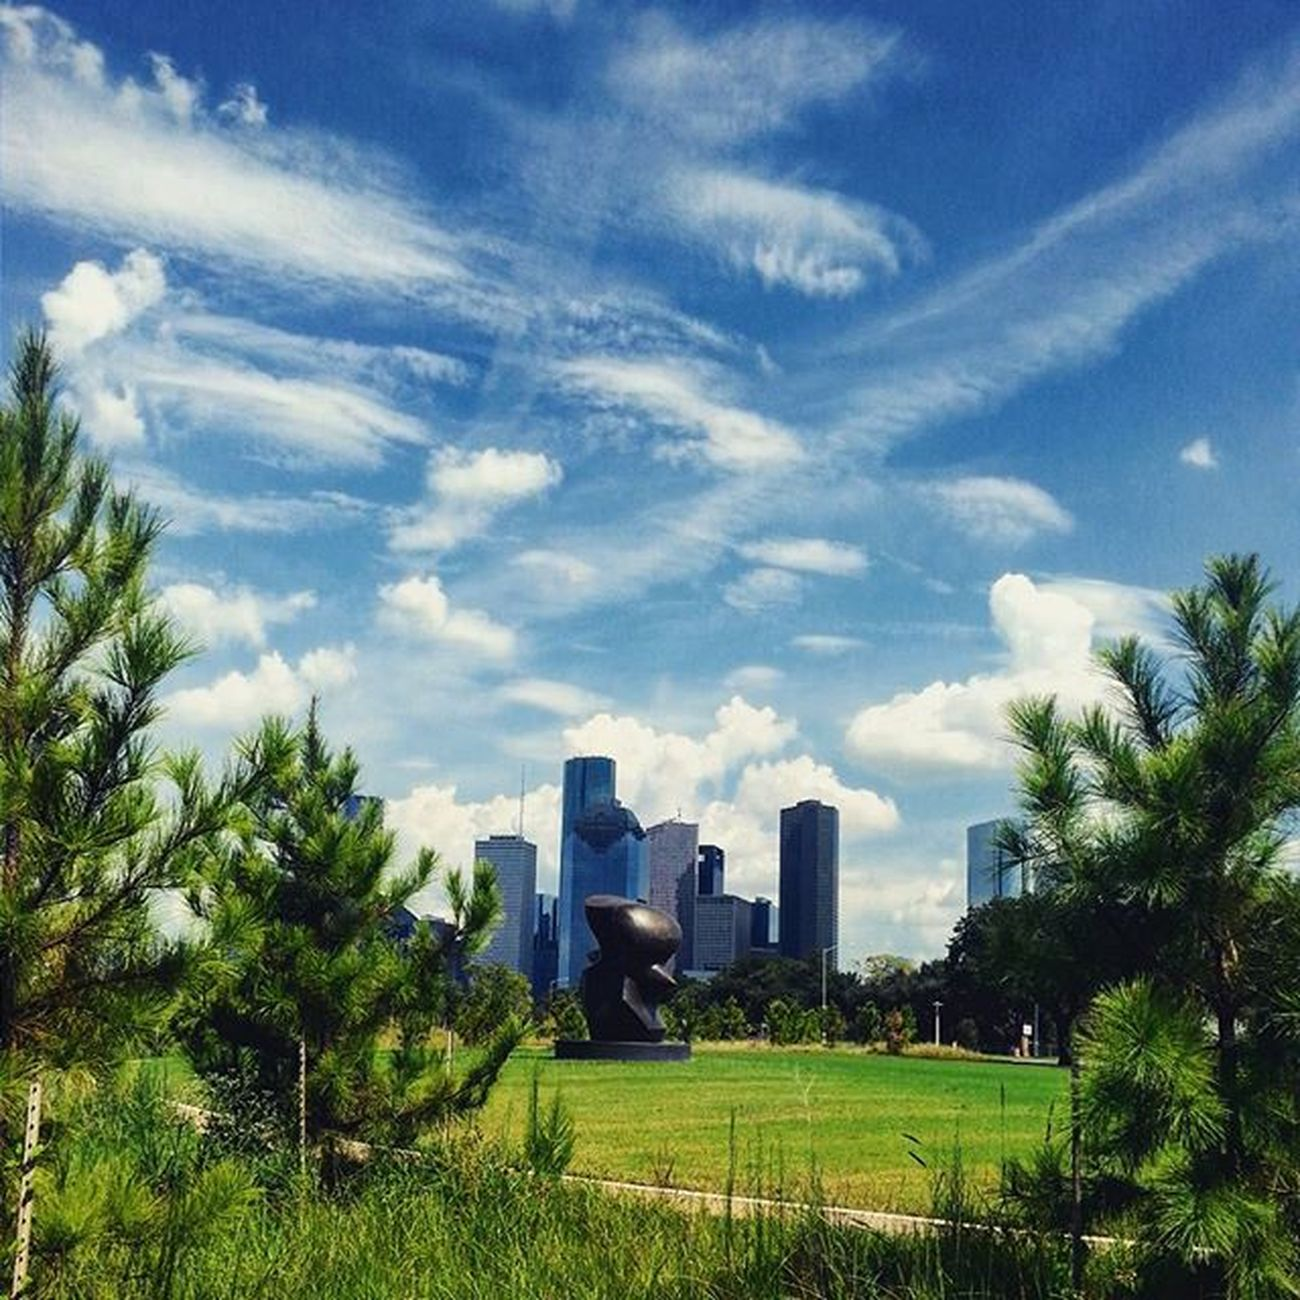 Houston Texas Skyline Architecture Nature Subtropical BuffaloBayouTrail SundayFunday Trees Clouds Fall2015 Bayoucity Bayou